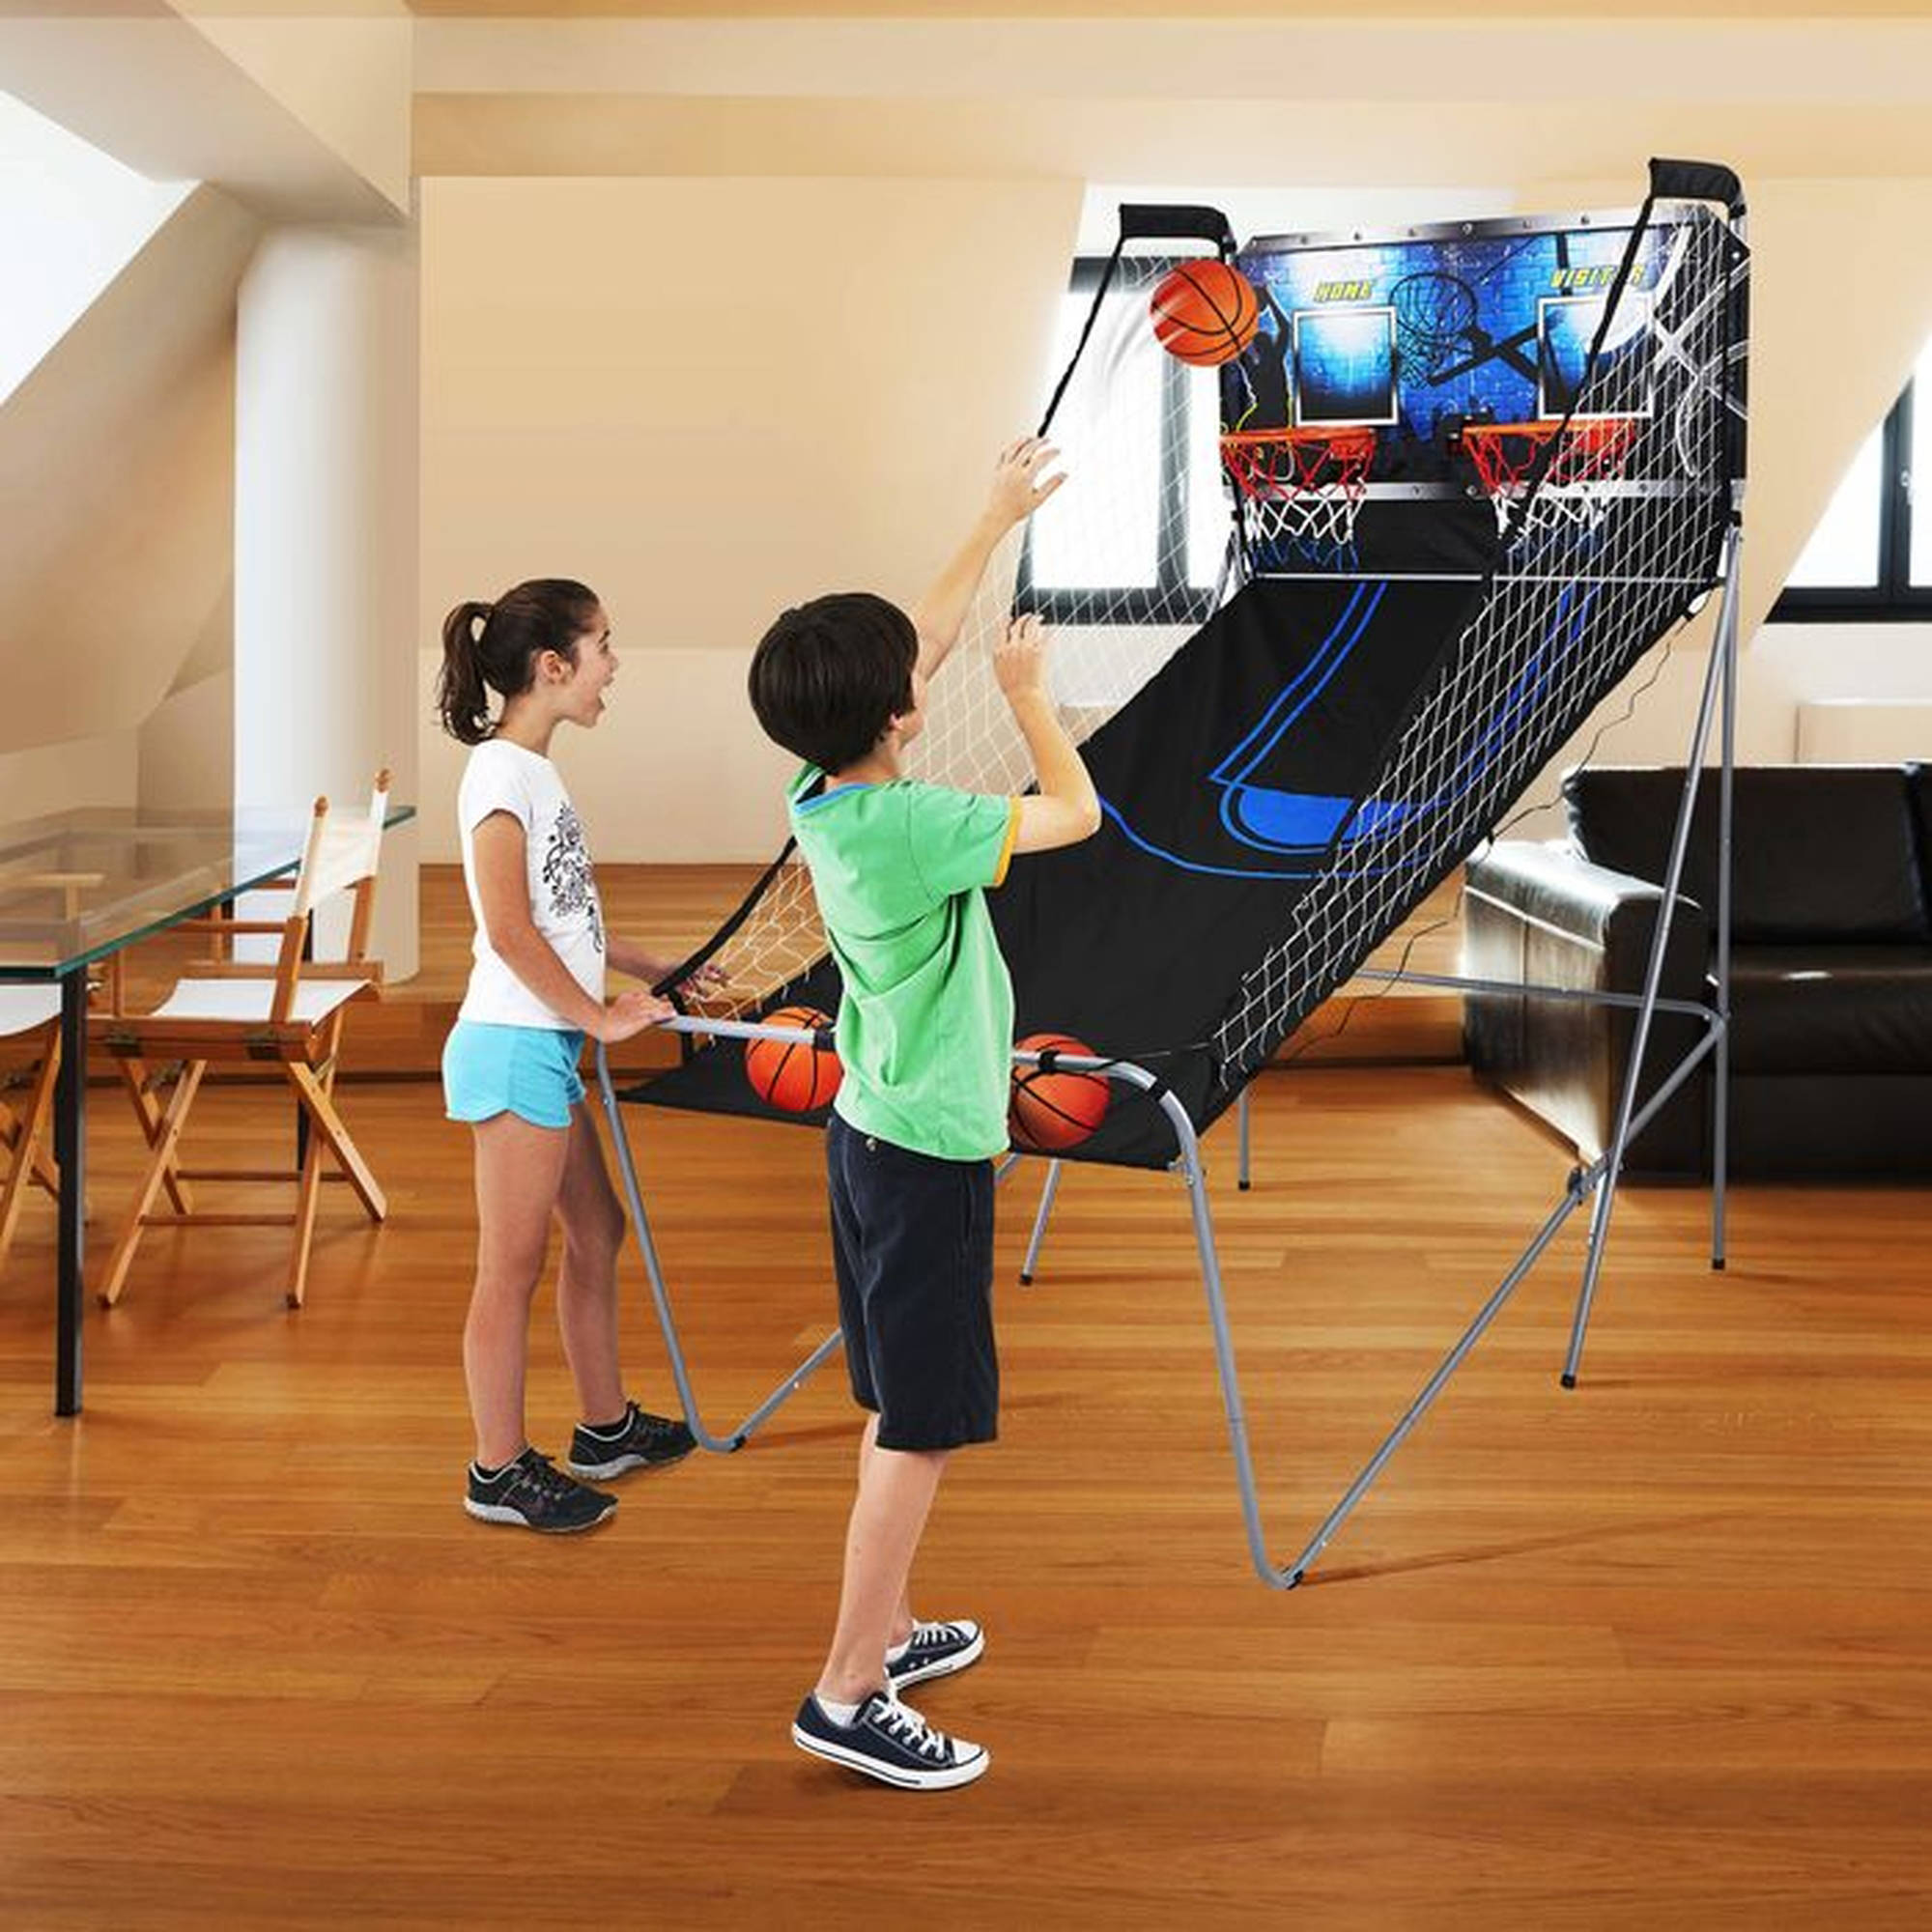 MD Sports 2-Player Arcade Basketball Game with 8 Game Options